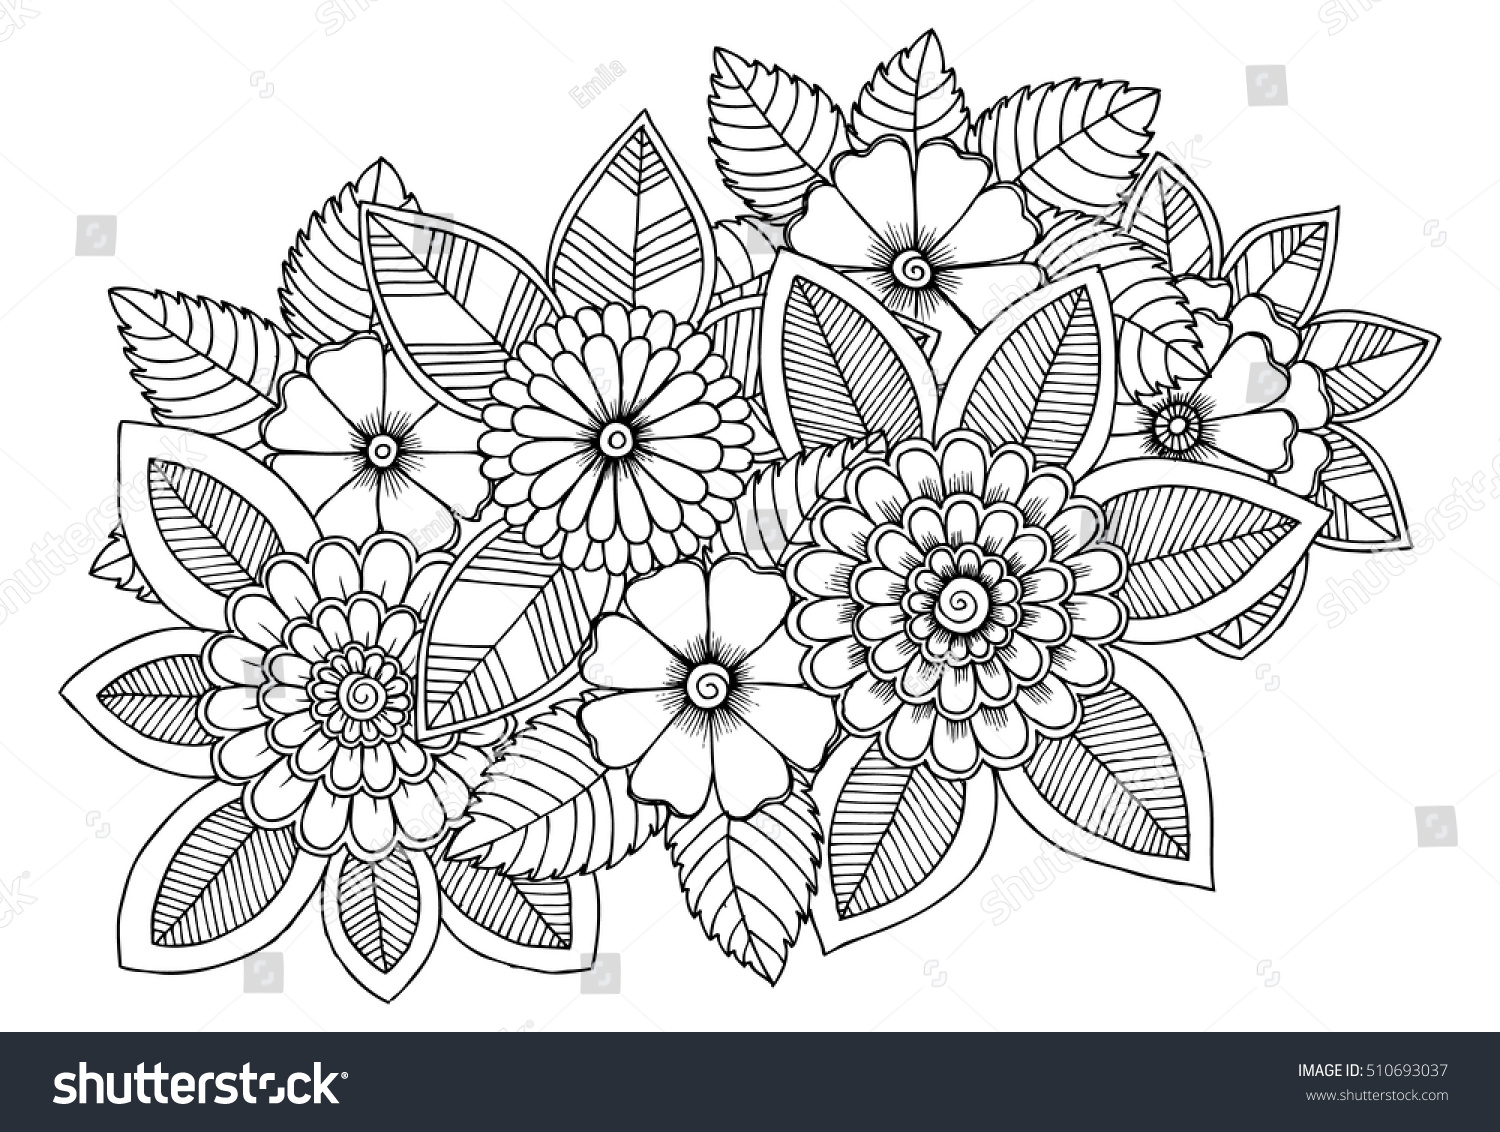 Black White Flower Pattern Coloring Doodle Stock Vector 510693037 ...